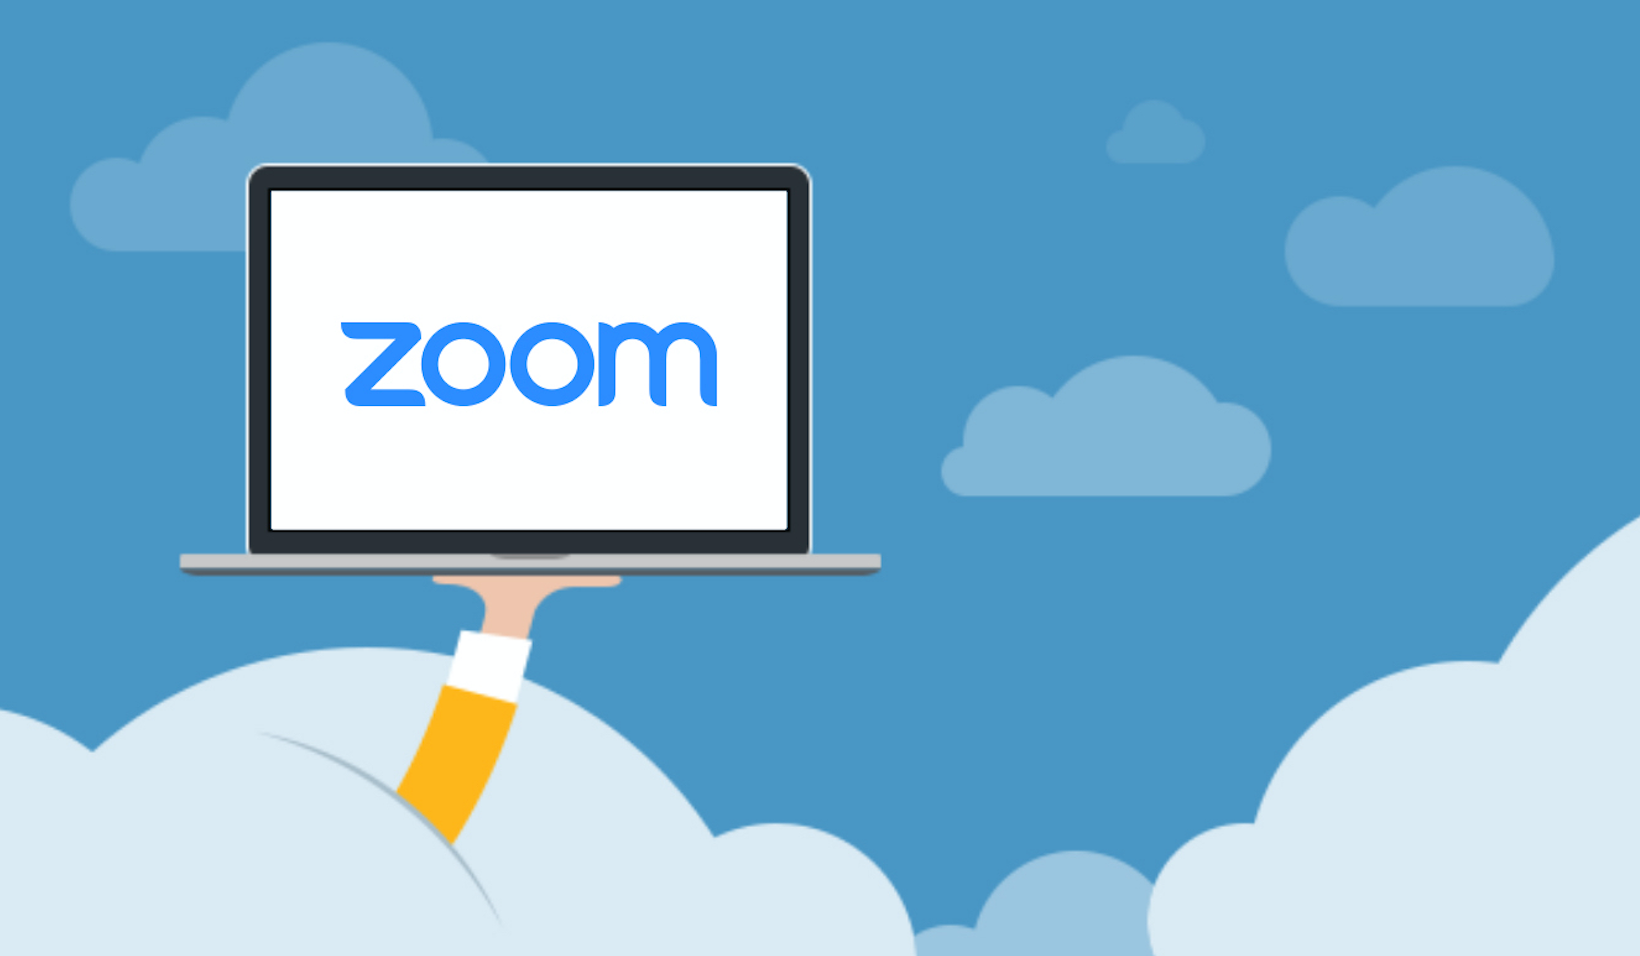 <p><span>Online interactive training on Zoom platform. </span></p> <p><em>LS Academy will provide the access link to the virtual platform a few days before the training.</em></p>